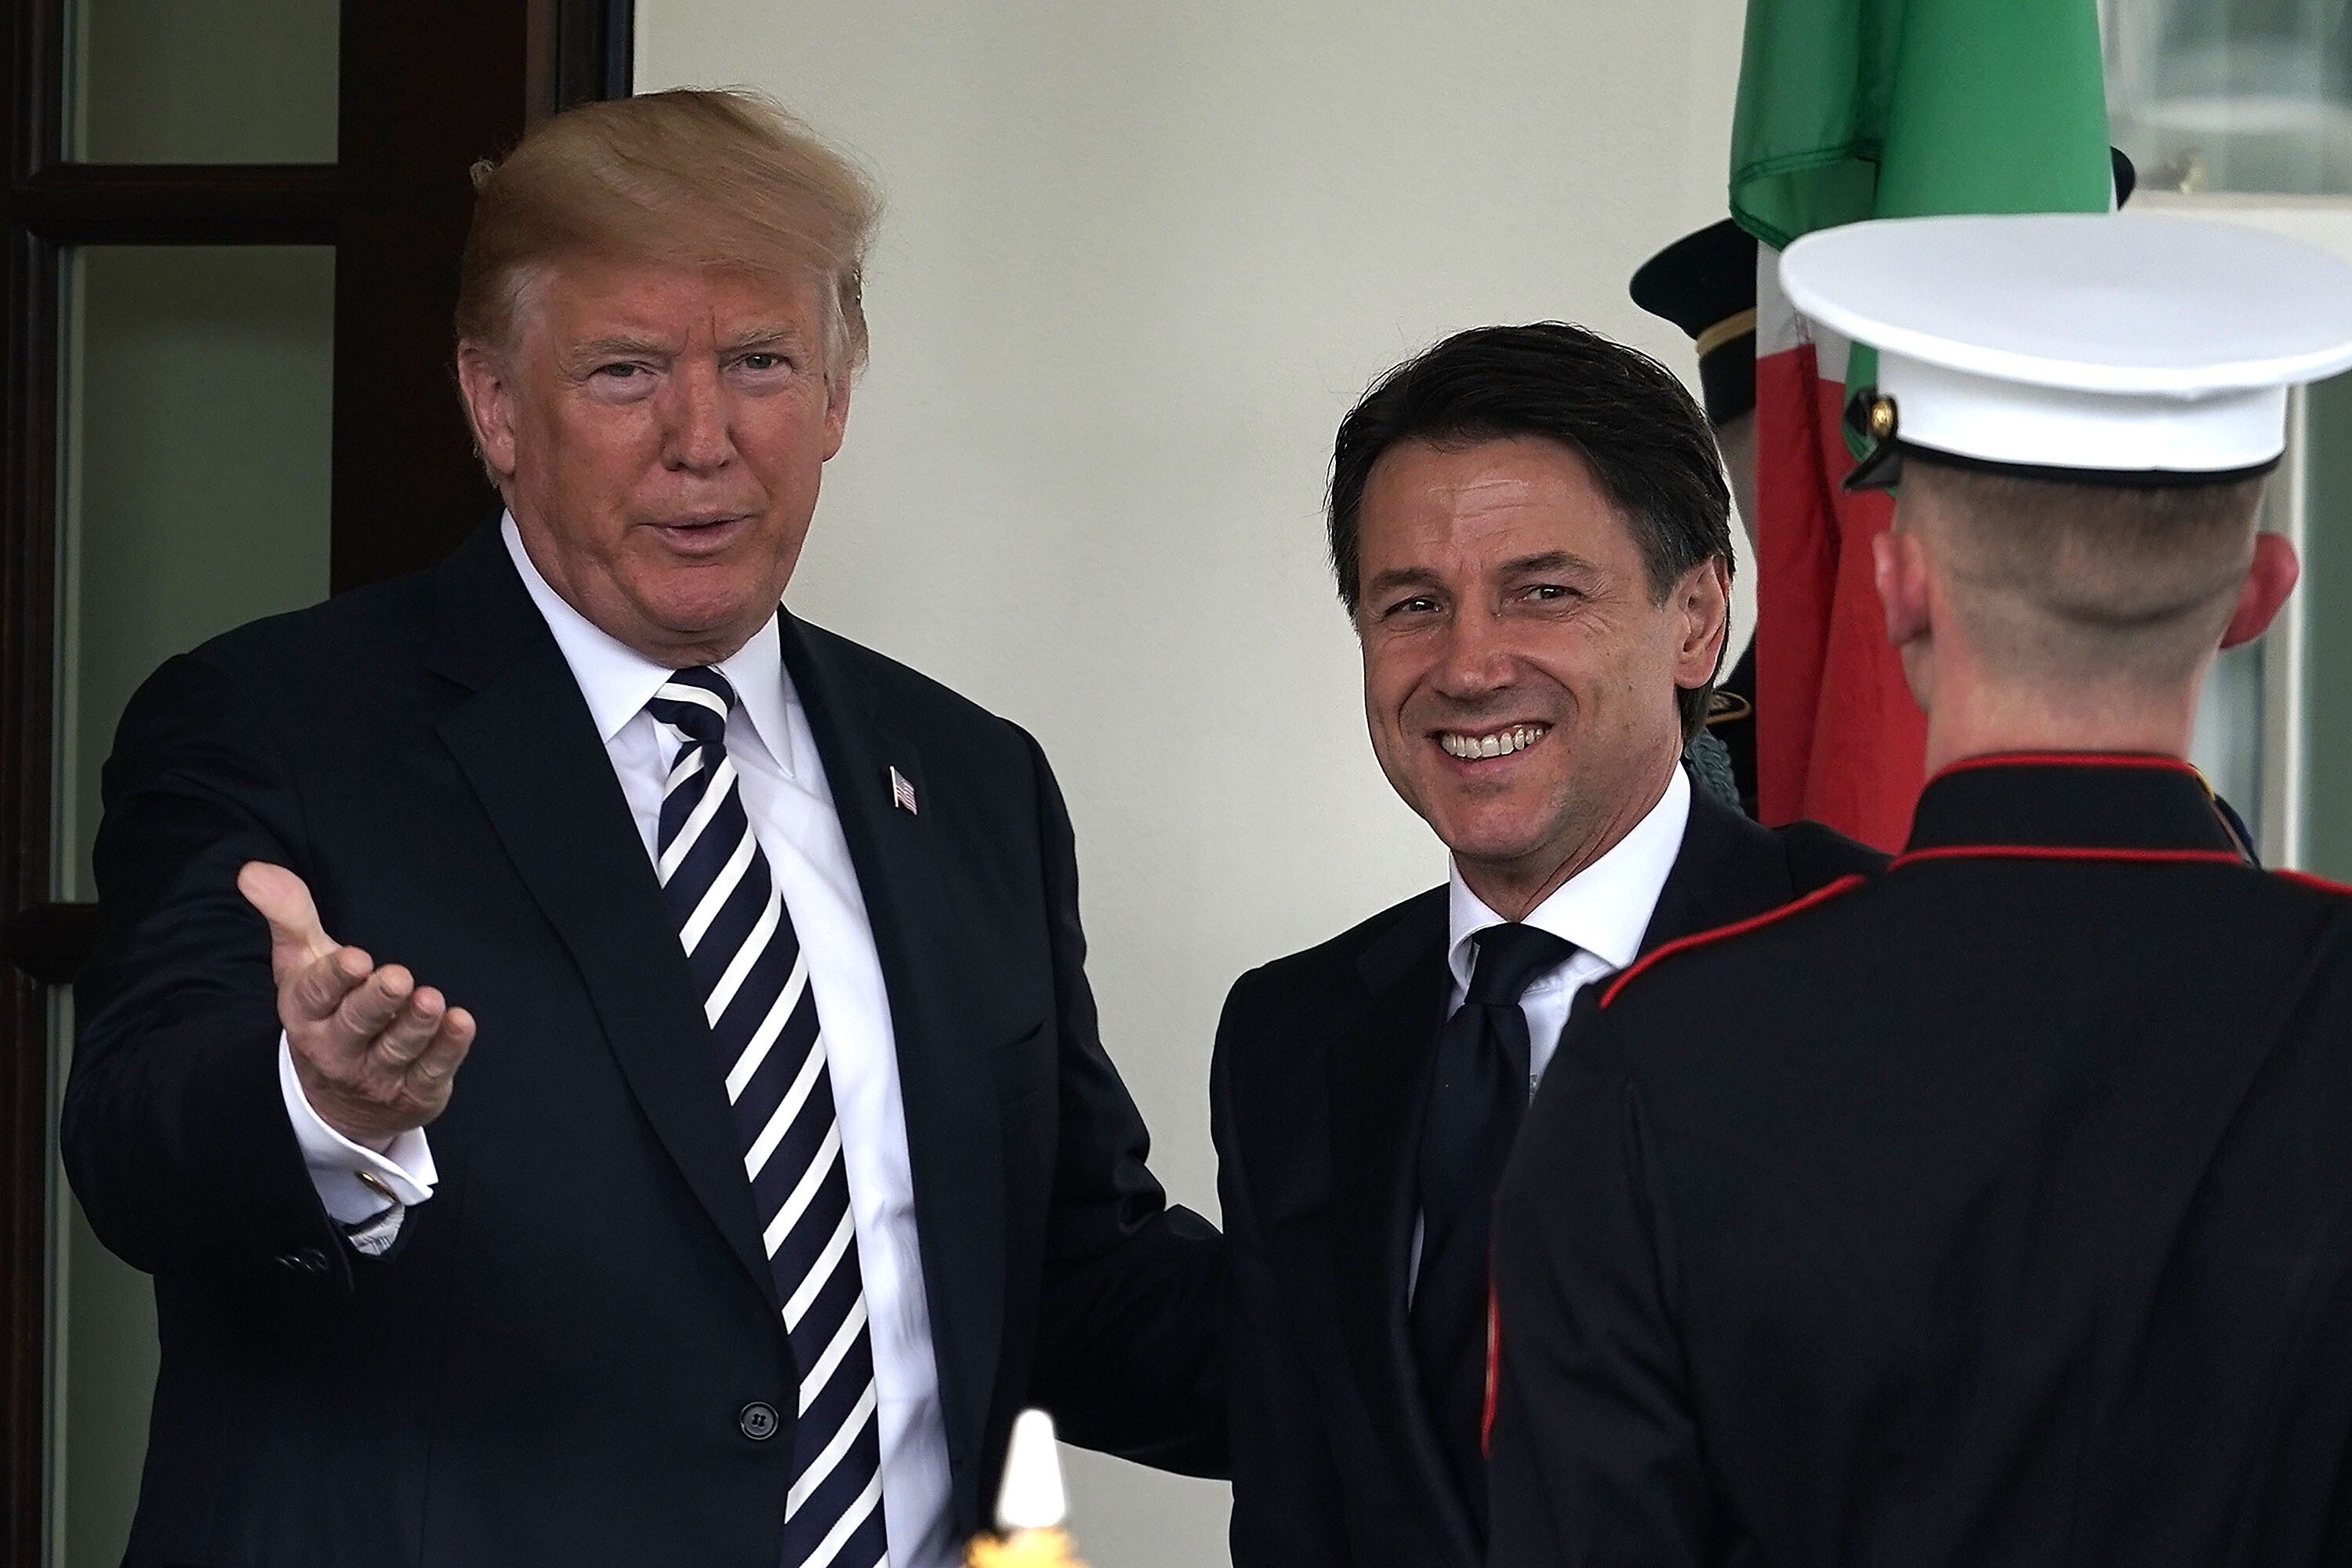 Image result for President Trump Praises Italian PM Giuseppe Conte's Stance on Borders and Immigration